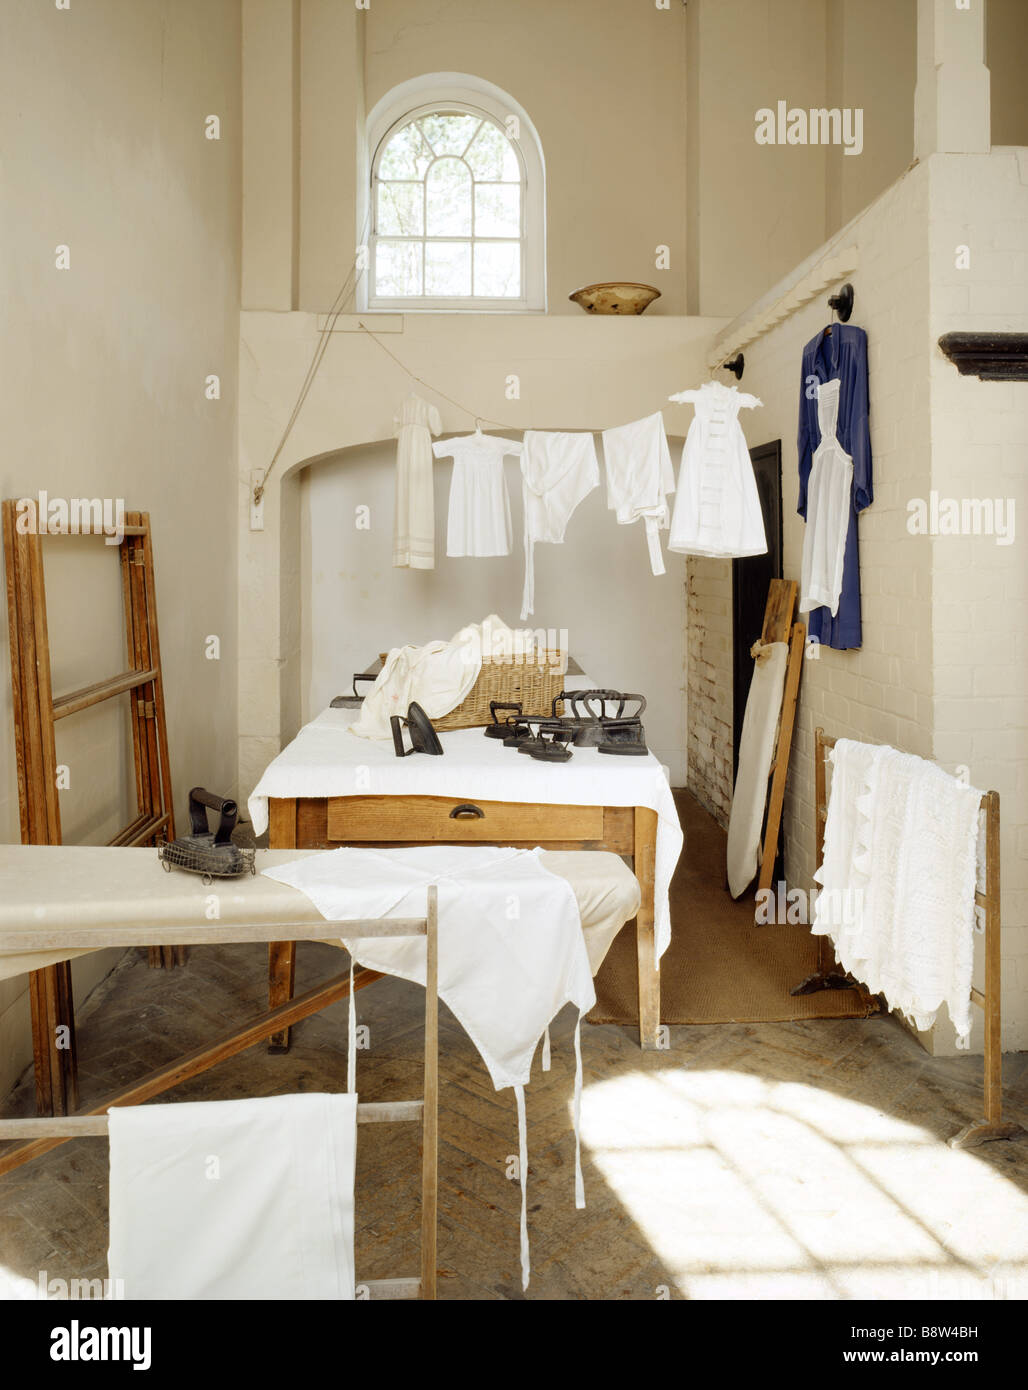 The Dry Area in the Laundry Berrington Laundry ready to be ironed irons of various sizes and ironing boards may Stock Photo